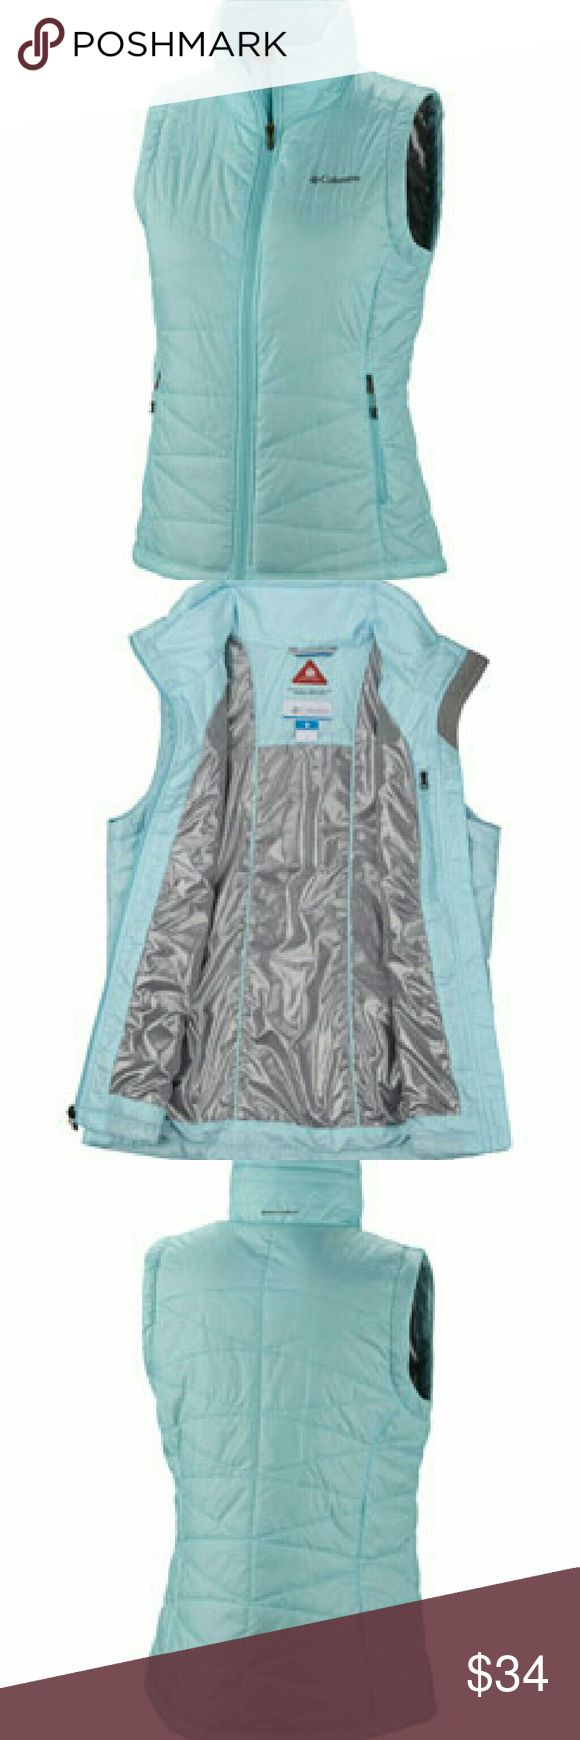 Columbia Mighty Lite blue vest Never worn. Active vest. Light ice blue color. Thin thermal insulation. Zip closed pockets. Columbia Jackets & Coats Vests